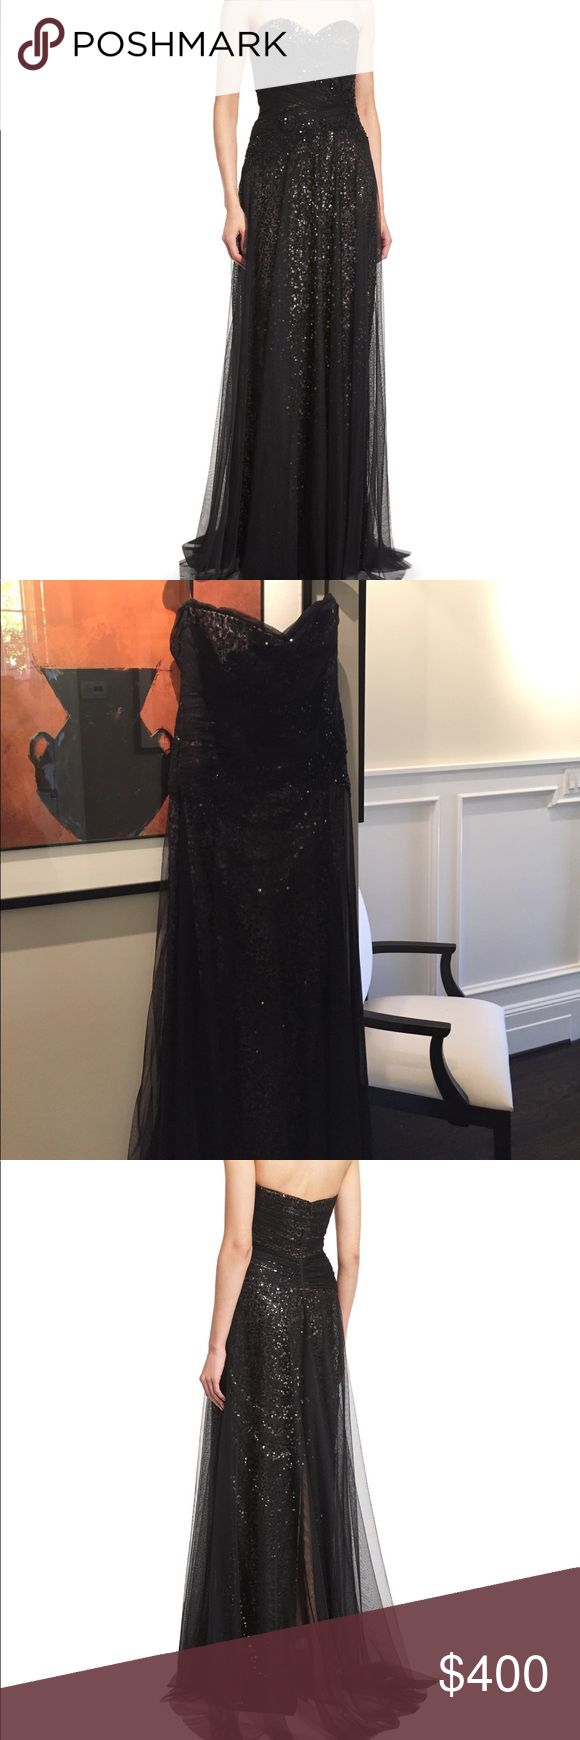 "Marchesa Dress This black sequin formal dress is an absolute stunner. It has a nude underlay. It has been worn only once for my daughter's wedding. It was purchased at Bergdorf Goodman. I am 5'7"" and has been hemmed to be my height PLUS 4"" heels. So plenty of length Marchesa Dresses"